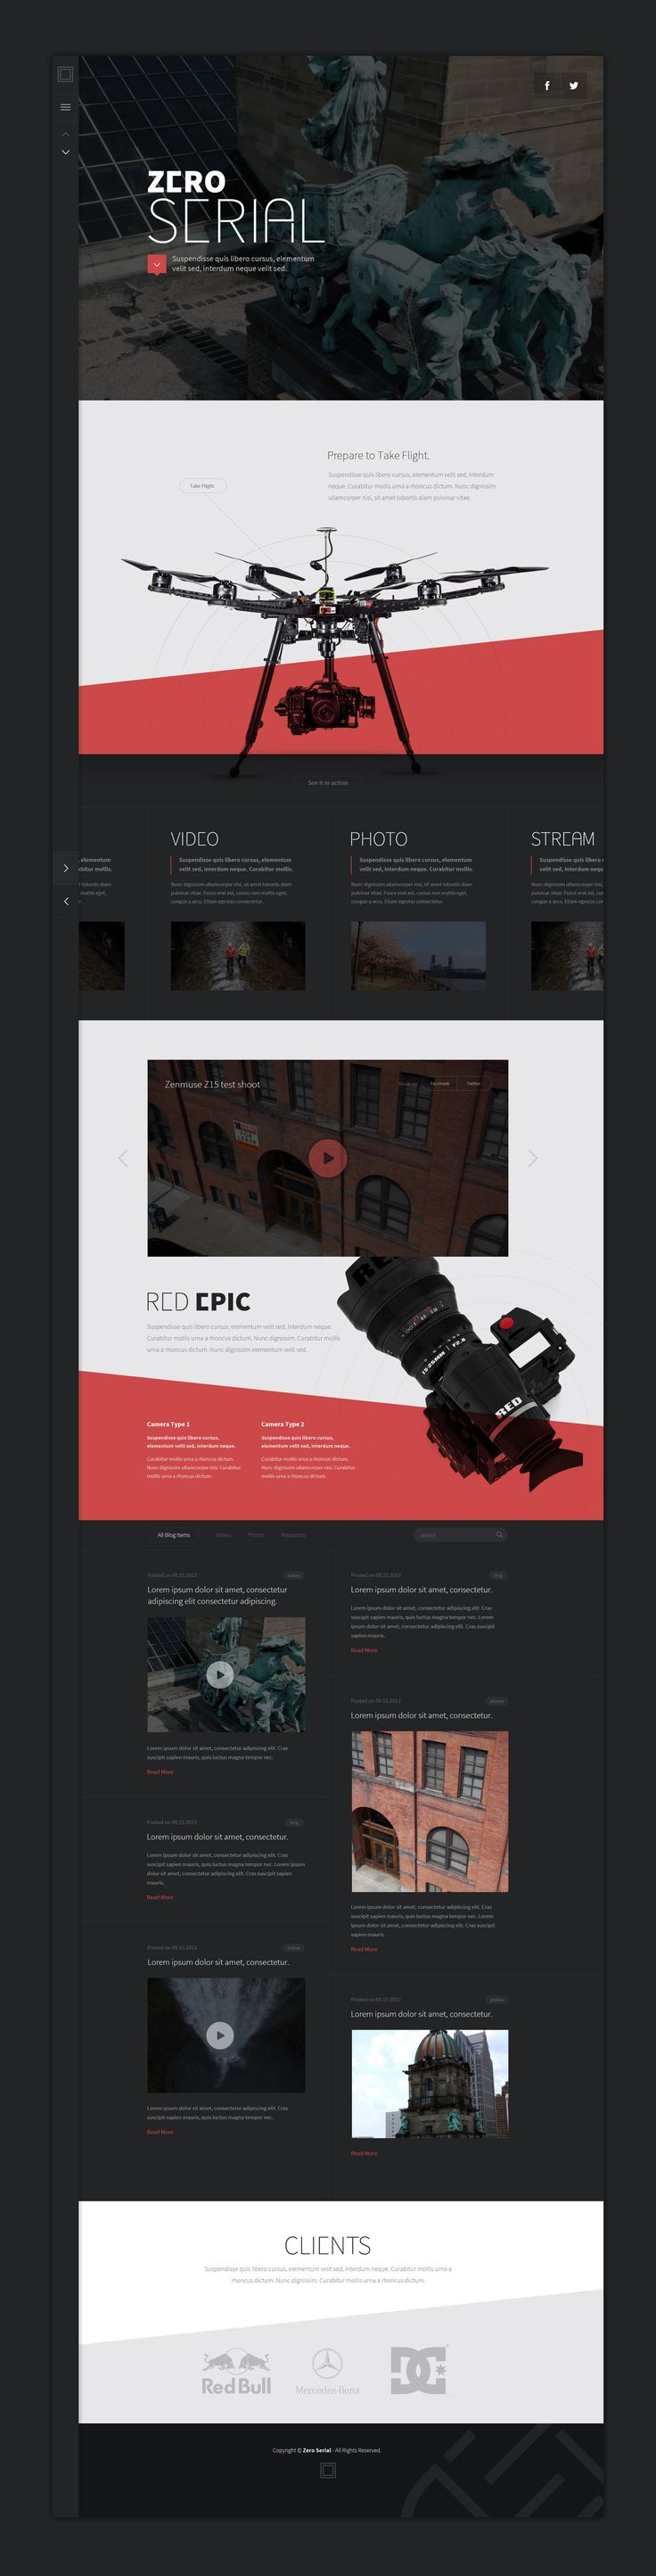 Full Drone Concept #amazing #WebDesign @Peggy Campbell Webster #Design #Responsive #UI #UX #GUI #ResponsveDesign